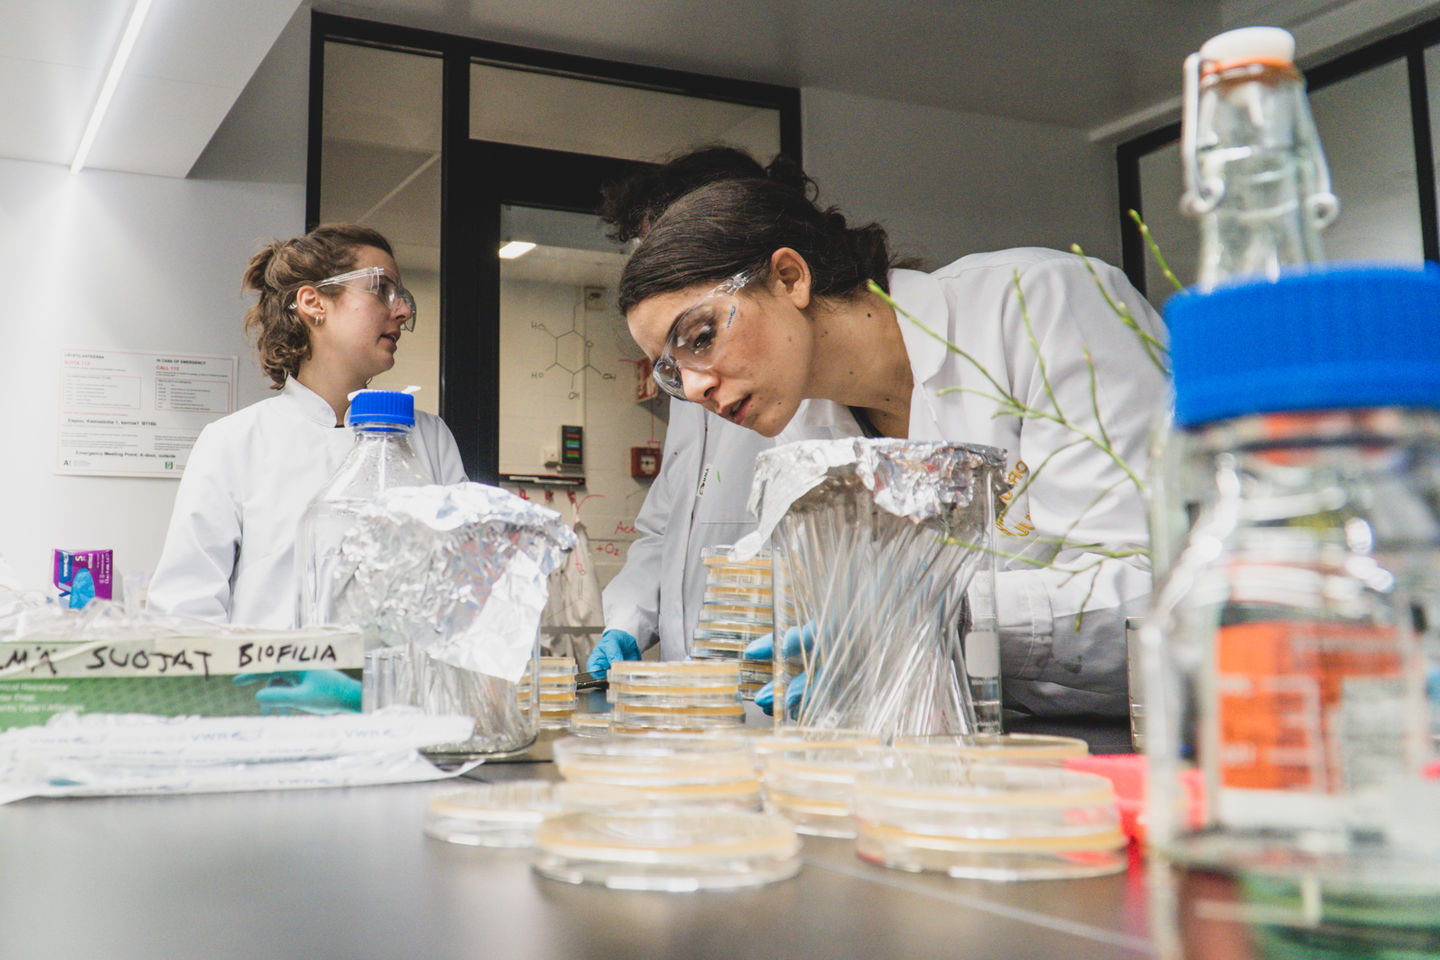 A student arches over the laboratory workspace to look more closely at some of the petri dishes laid out before her. In the background, two students converse with each other.